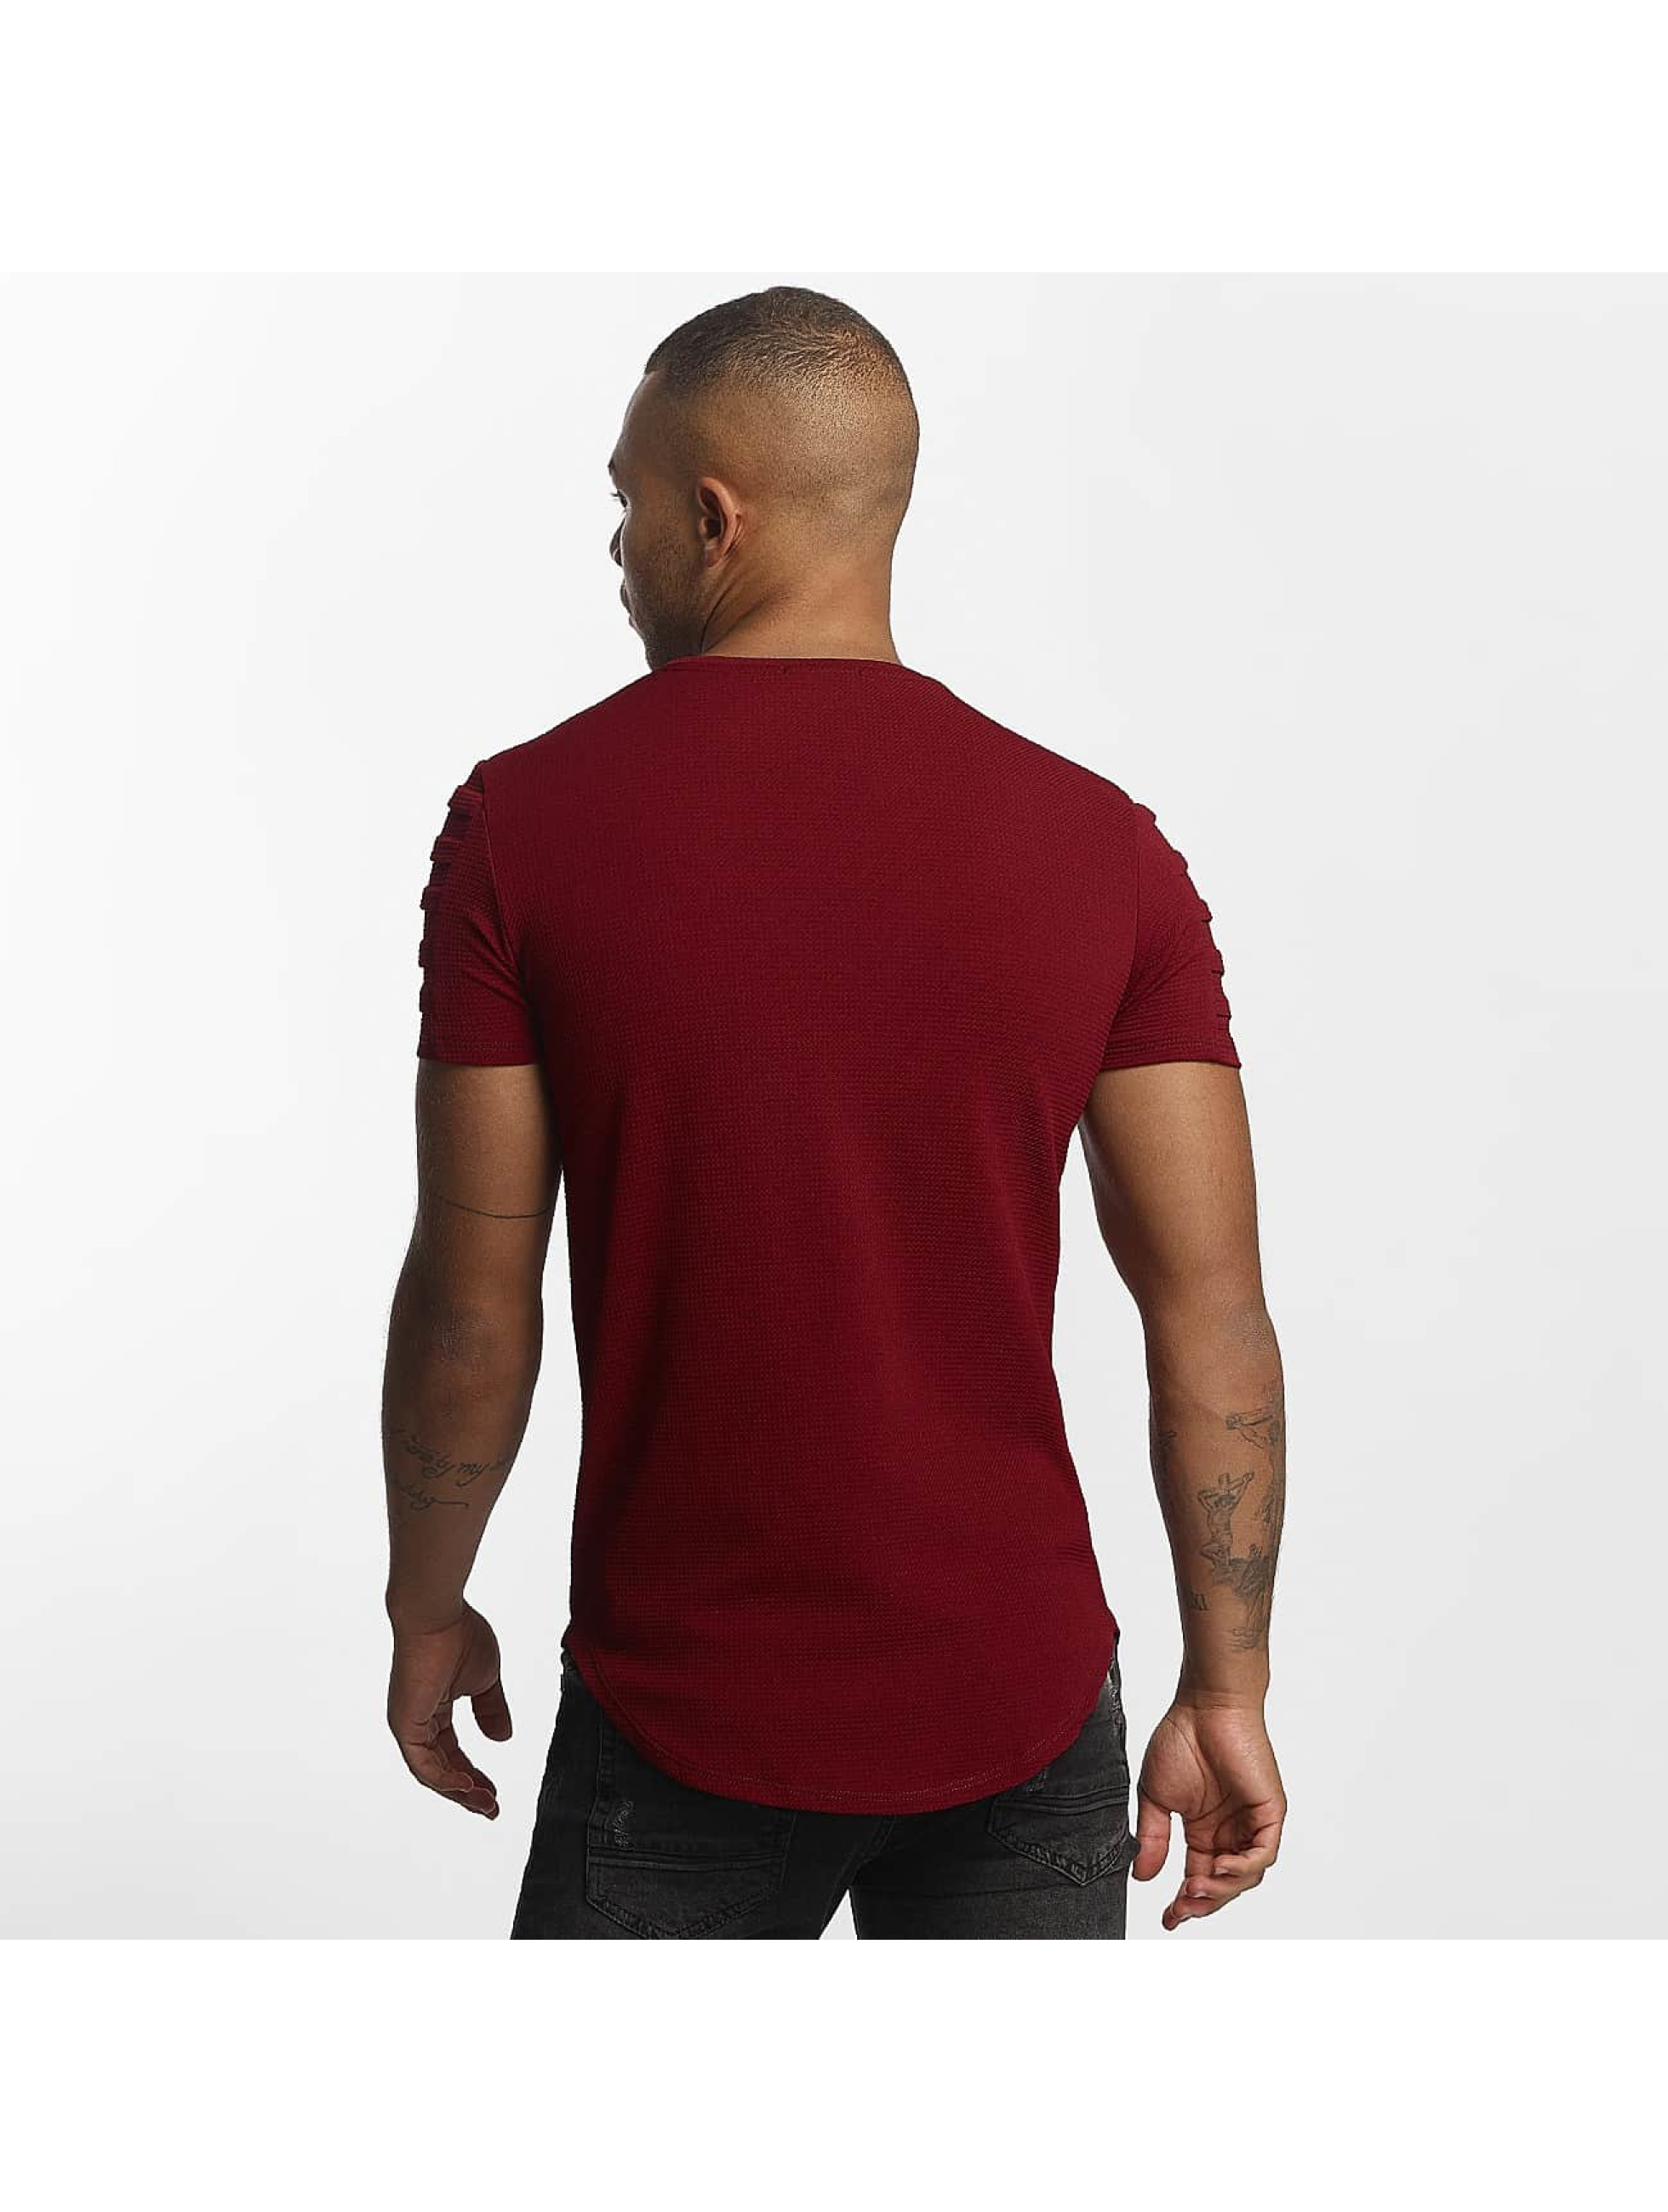 Uniplay t-shirt Embossed rood